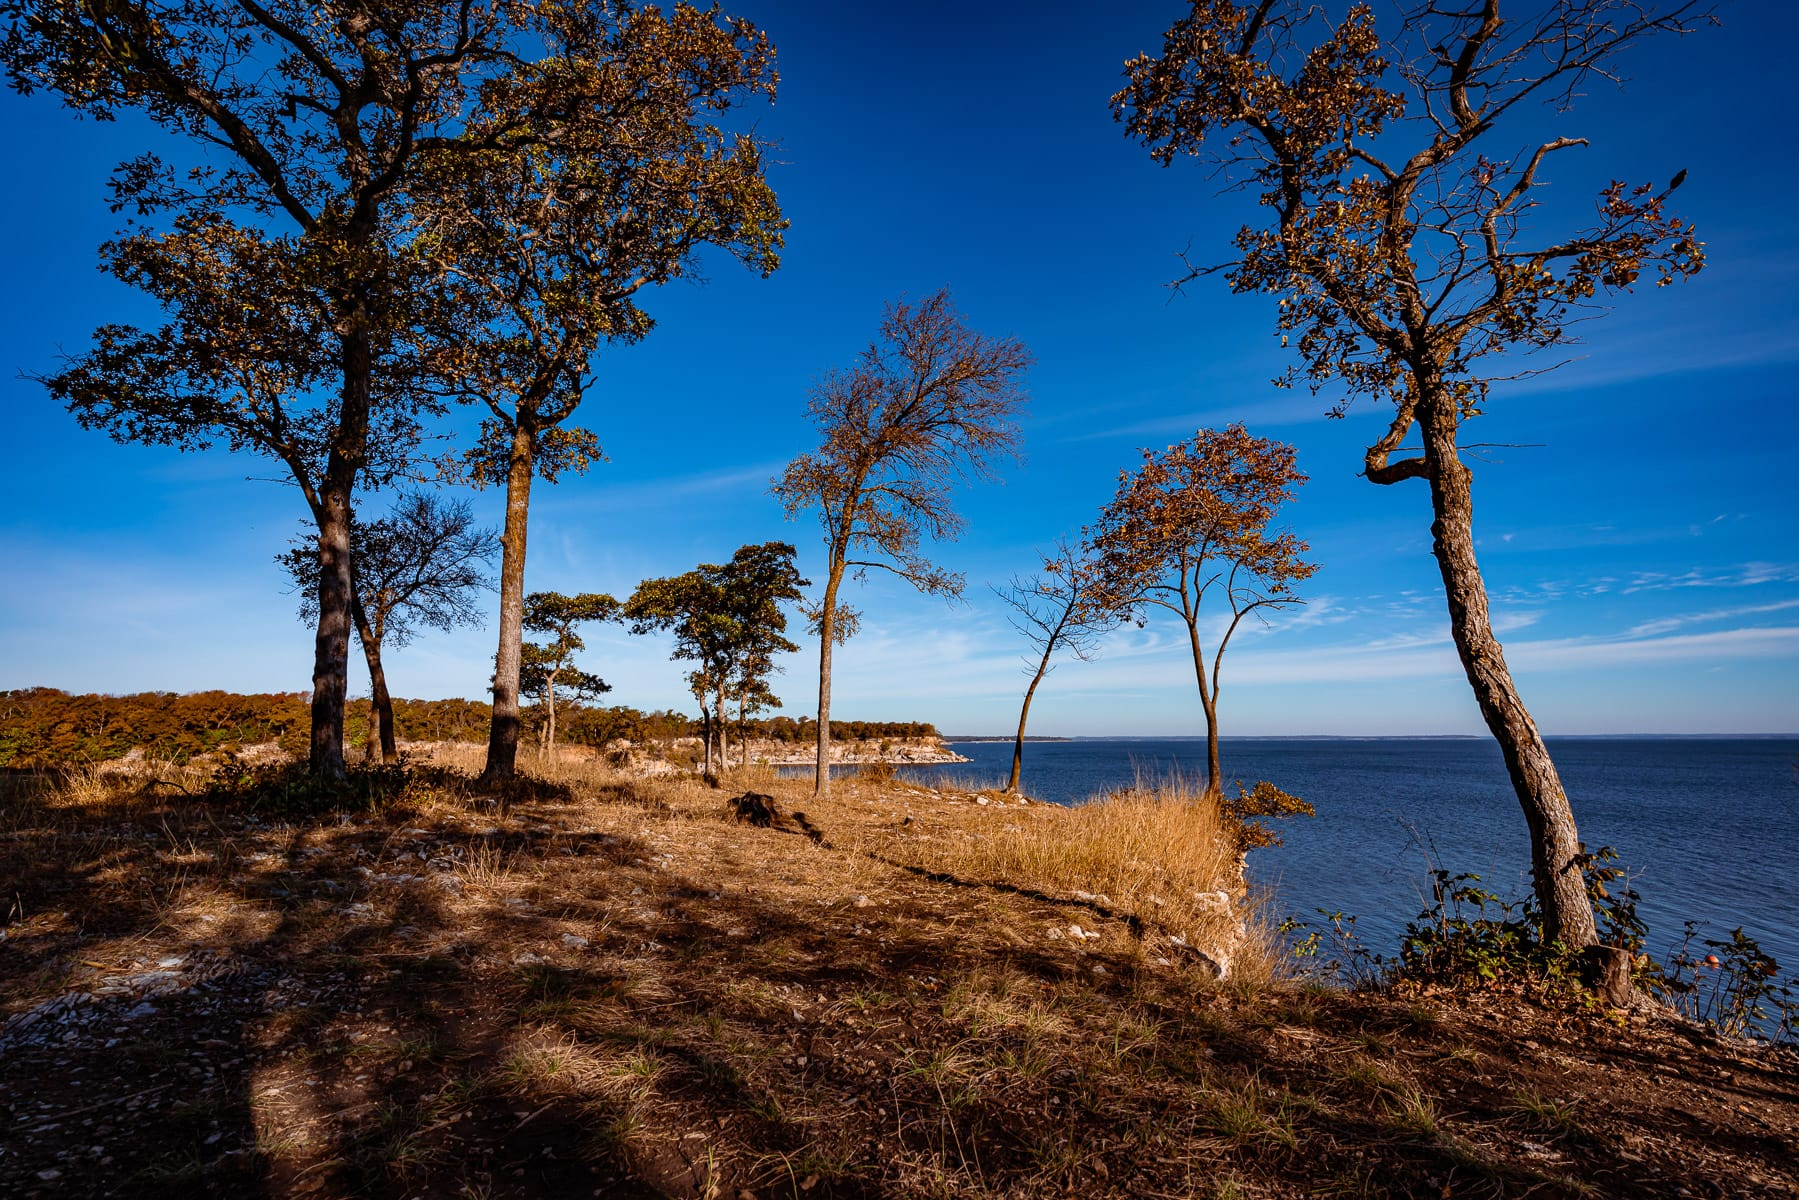 Trees on a bluff along the shore of Lake Texoma at Eisenhower State Park, Texas.